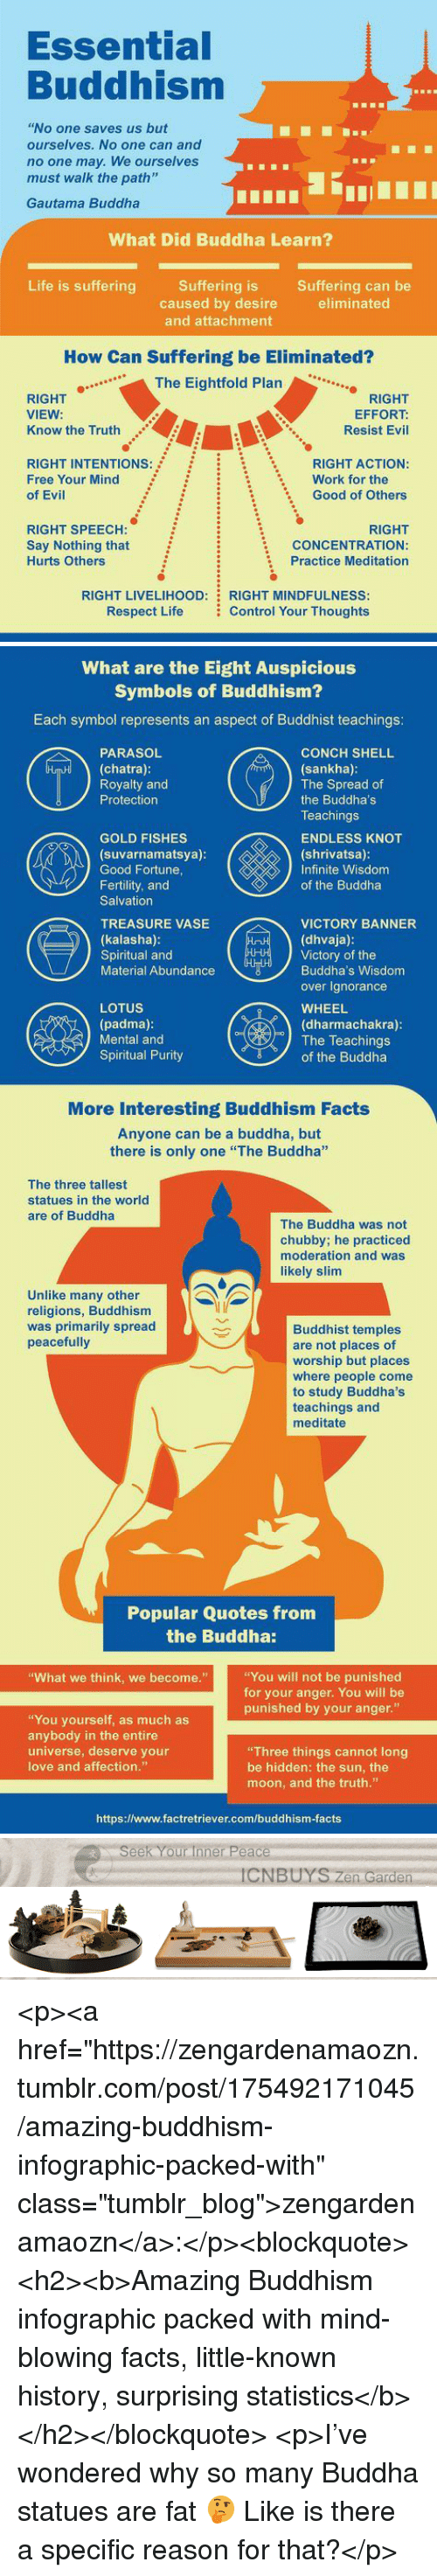 """Facts, Life, and Love: Essential  Buddhism  """"No one saves us but  ourselves. No one can and  no one may. We ourselves  must walk the path'""""  Gautama Buddha  What Did Buddha Learn?  Life is sufferingSuffering is  Suffering can be  eliminated  caused by desire  and attachment  How Can Suffering be Eliminated?  ..The Eightfold Plan  RIGHT  VIEW:  Know the Truth  RIGHT  EFFORT:  Resist Evil  RIGHT INTENTIONs:  Free Your Mind  of Evil  RIGHT ACTION:  Good of Others  Work for the  :  :  \  RIGHT SPEECH:  Say Nothing that  Hurts Others  RIGHT  CONCENTRATION:  Practice Meditation  RIGHT LIVELIHOOD:  Respect Life  RIGHT MINDFULNESS  Control Your Thoughts   What are the Eight Auspicious  Symbols of Buddhism?  Each symbol represents an aspect of Buddhist teachings:  CONCH SHELL  (sankha)  The Spread of  the Buddha's  Teachings  ENDLESS KNOT  (shrivatsa):  Infinite Wisdom  of the Buddha  PARASOL  (chatra):  Royalty and  Protection  GOLD FISHES  (suvarnamatsya)  Good Fortune,  Fertility, and  Salvation  TREASURE VASE  (kalasha)  Spiritual and  Material Abundance  VICTORY BANNER  (dhvaja)  Victory of the  Buddha's Wisdom  over Ignorance  WHEEL  (dharmachakra):  LOTUS  (padma)  Mental and  Spiritual Purity  The Teachings  dr〒ソof the Buddha  More Interesting Buddhism Facts  Anyone can be a buddha, but  there is only one """"The Buddha""""  The three tallest  statues in the world  are of Buddha  The Buddha was not  chubby; he practiced  moderation and was  likely slim  Unlike many other  religions, Buddhism  was primarily spread  peacefully  Buddhist temples  are not places of  worship but places  where people come  to study Buddha's  teachings and  meditate  Popular Quotes from  the Buddha:  You will not be punished  for your anger. You will be  punished by your anger.""""  What we think, we become.""""  """"You yourself, as much as  anybody in the entire  universe, deserve your  love and affection.""""  Three things cannot long  be hidden: the sun, the  moon, and the truth.""""  https://www.factretrie"""